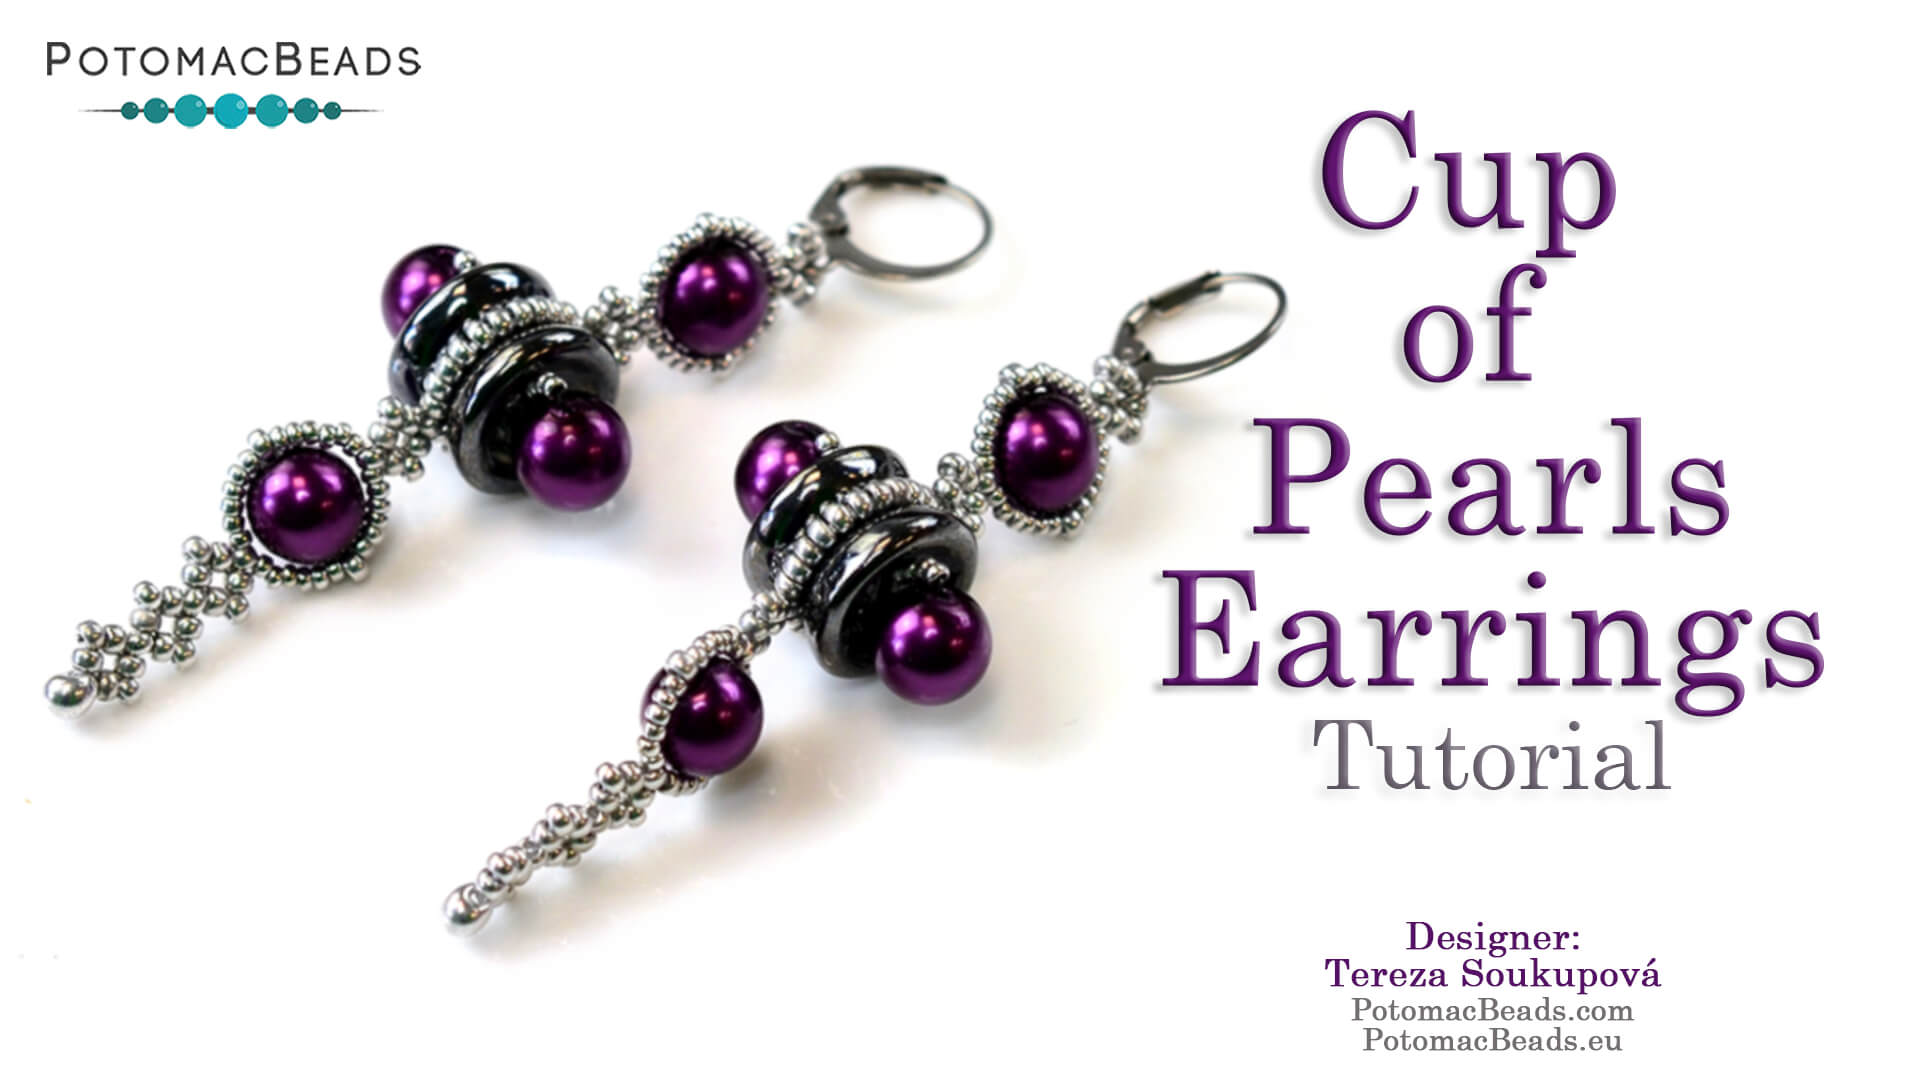 How to Bead Jewelry / Videos Sorted by Beads / All Other Bead Videos / Cup of Pearls Earrings Tutorial